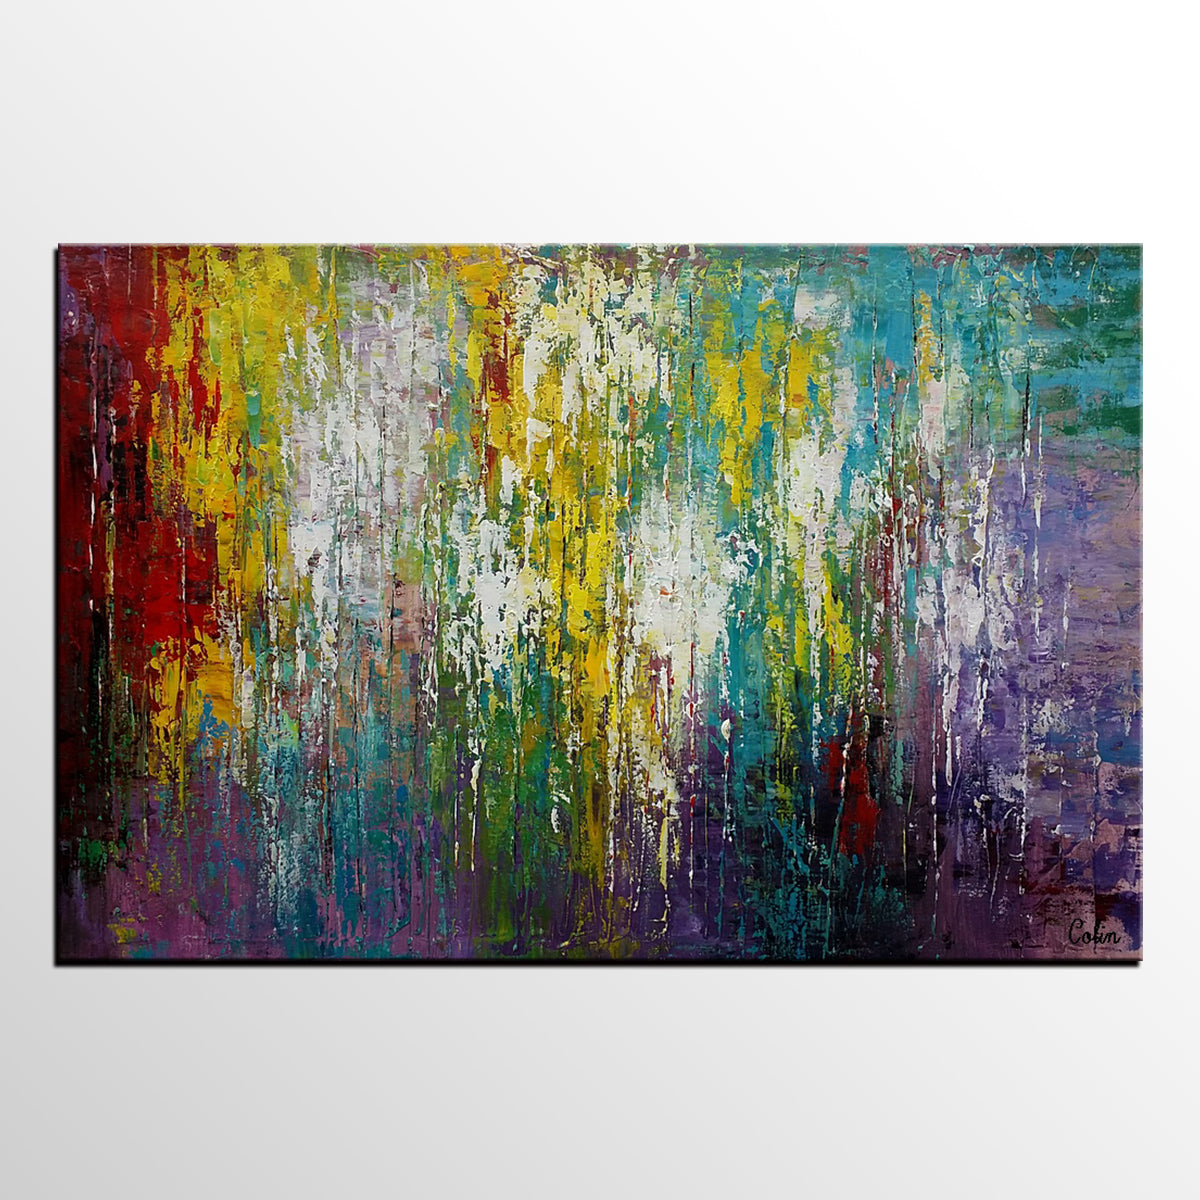 Original Wall Art, Abstract Painting, Large Art, Canvas Art, Abstract Wall Art, Original Artwork, Canvas Painting, 318